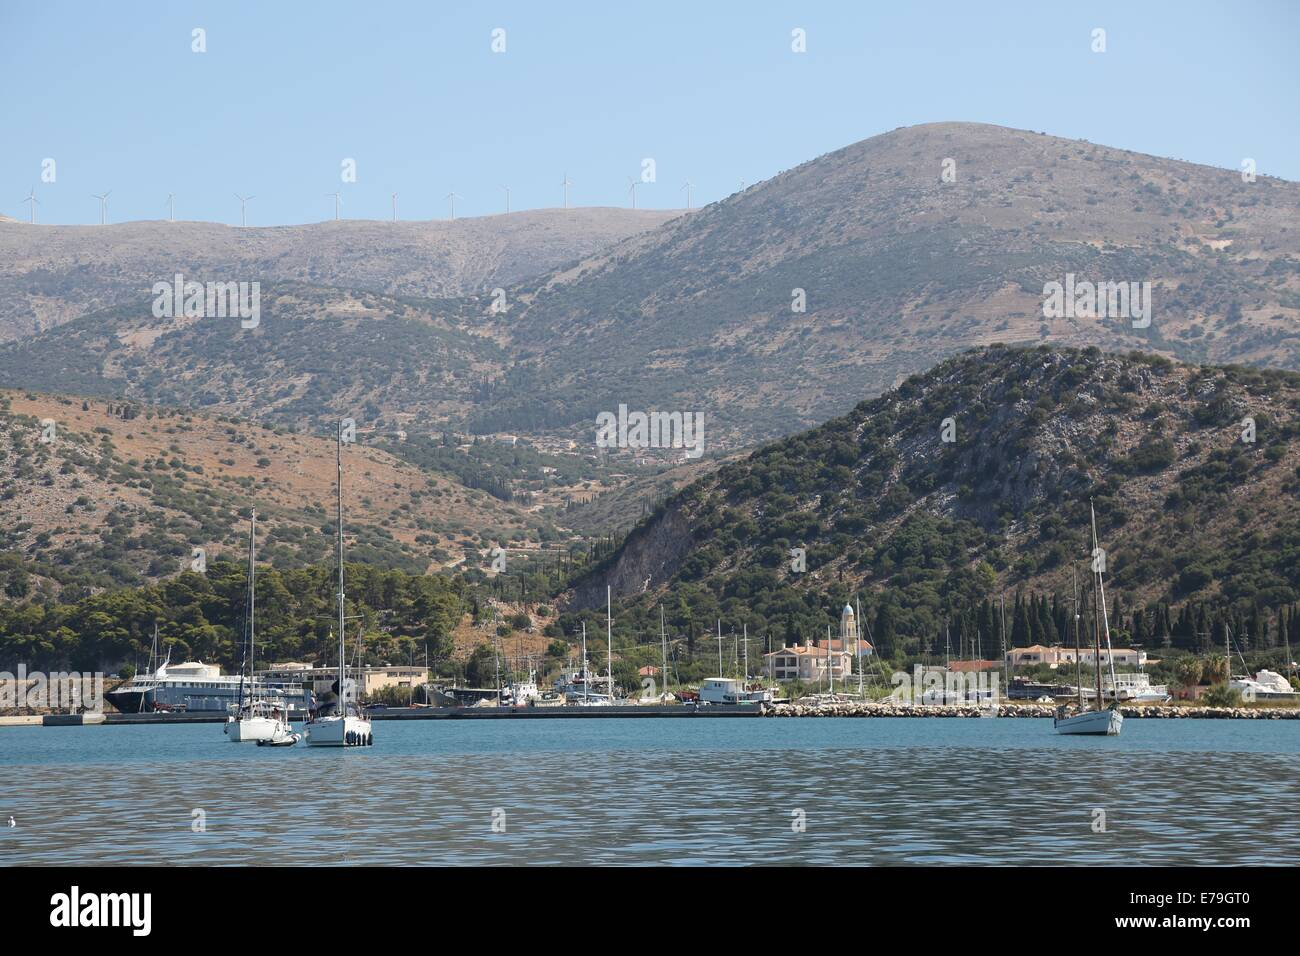 View from Harbour and Seafront Promenade, Argostoli, Kefalonia, Ionian Islands, Greece - Stock Image